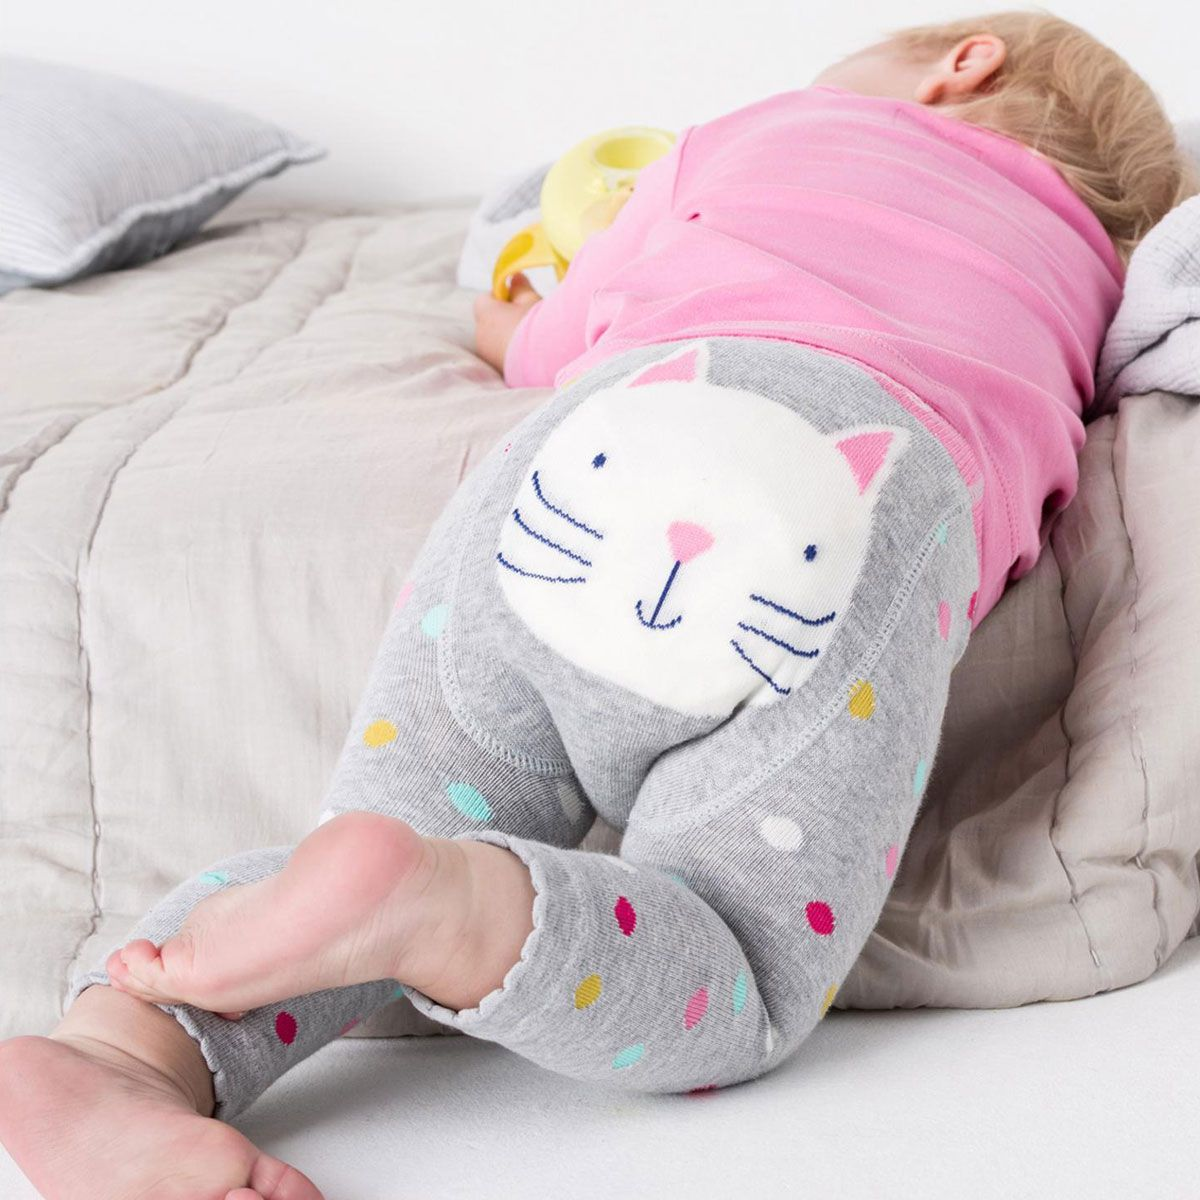 Panda Superstore Baby Socks Baby Leggings Comfy Leg Guards, Yrs,2 Sets (Random Style) Sold by Blancho Bedding. $ Panda Superstore Baby Cotton Socks Baby Leggings Comfy Leg Guards,3 Sets(Pink and Purple) Sold by Blancho Bedding. $